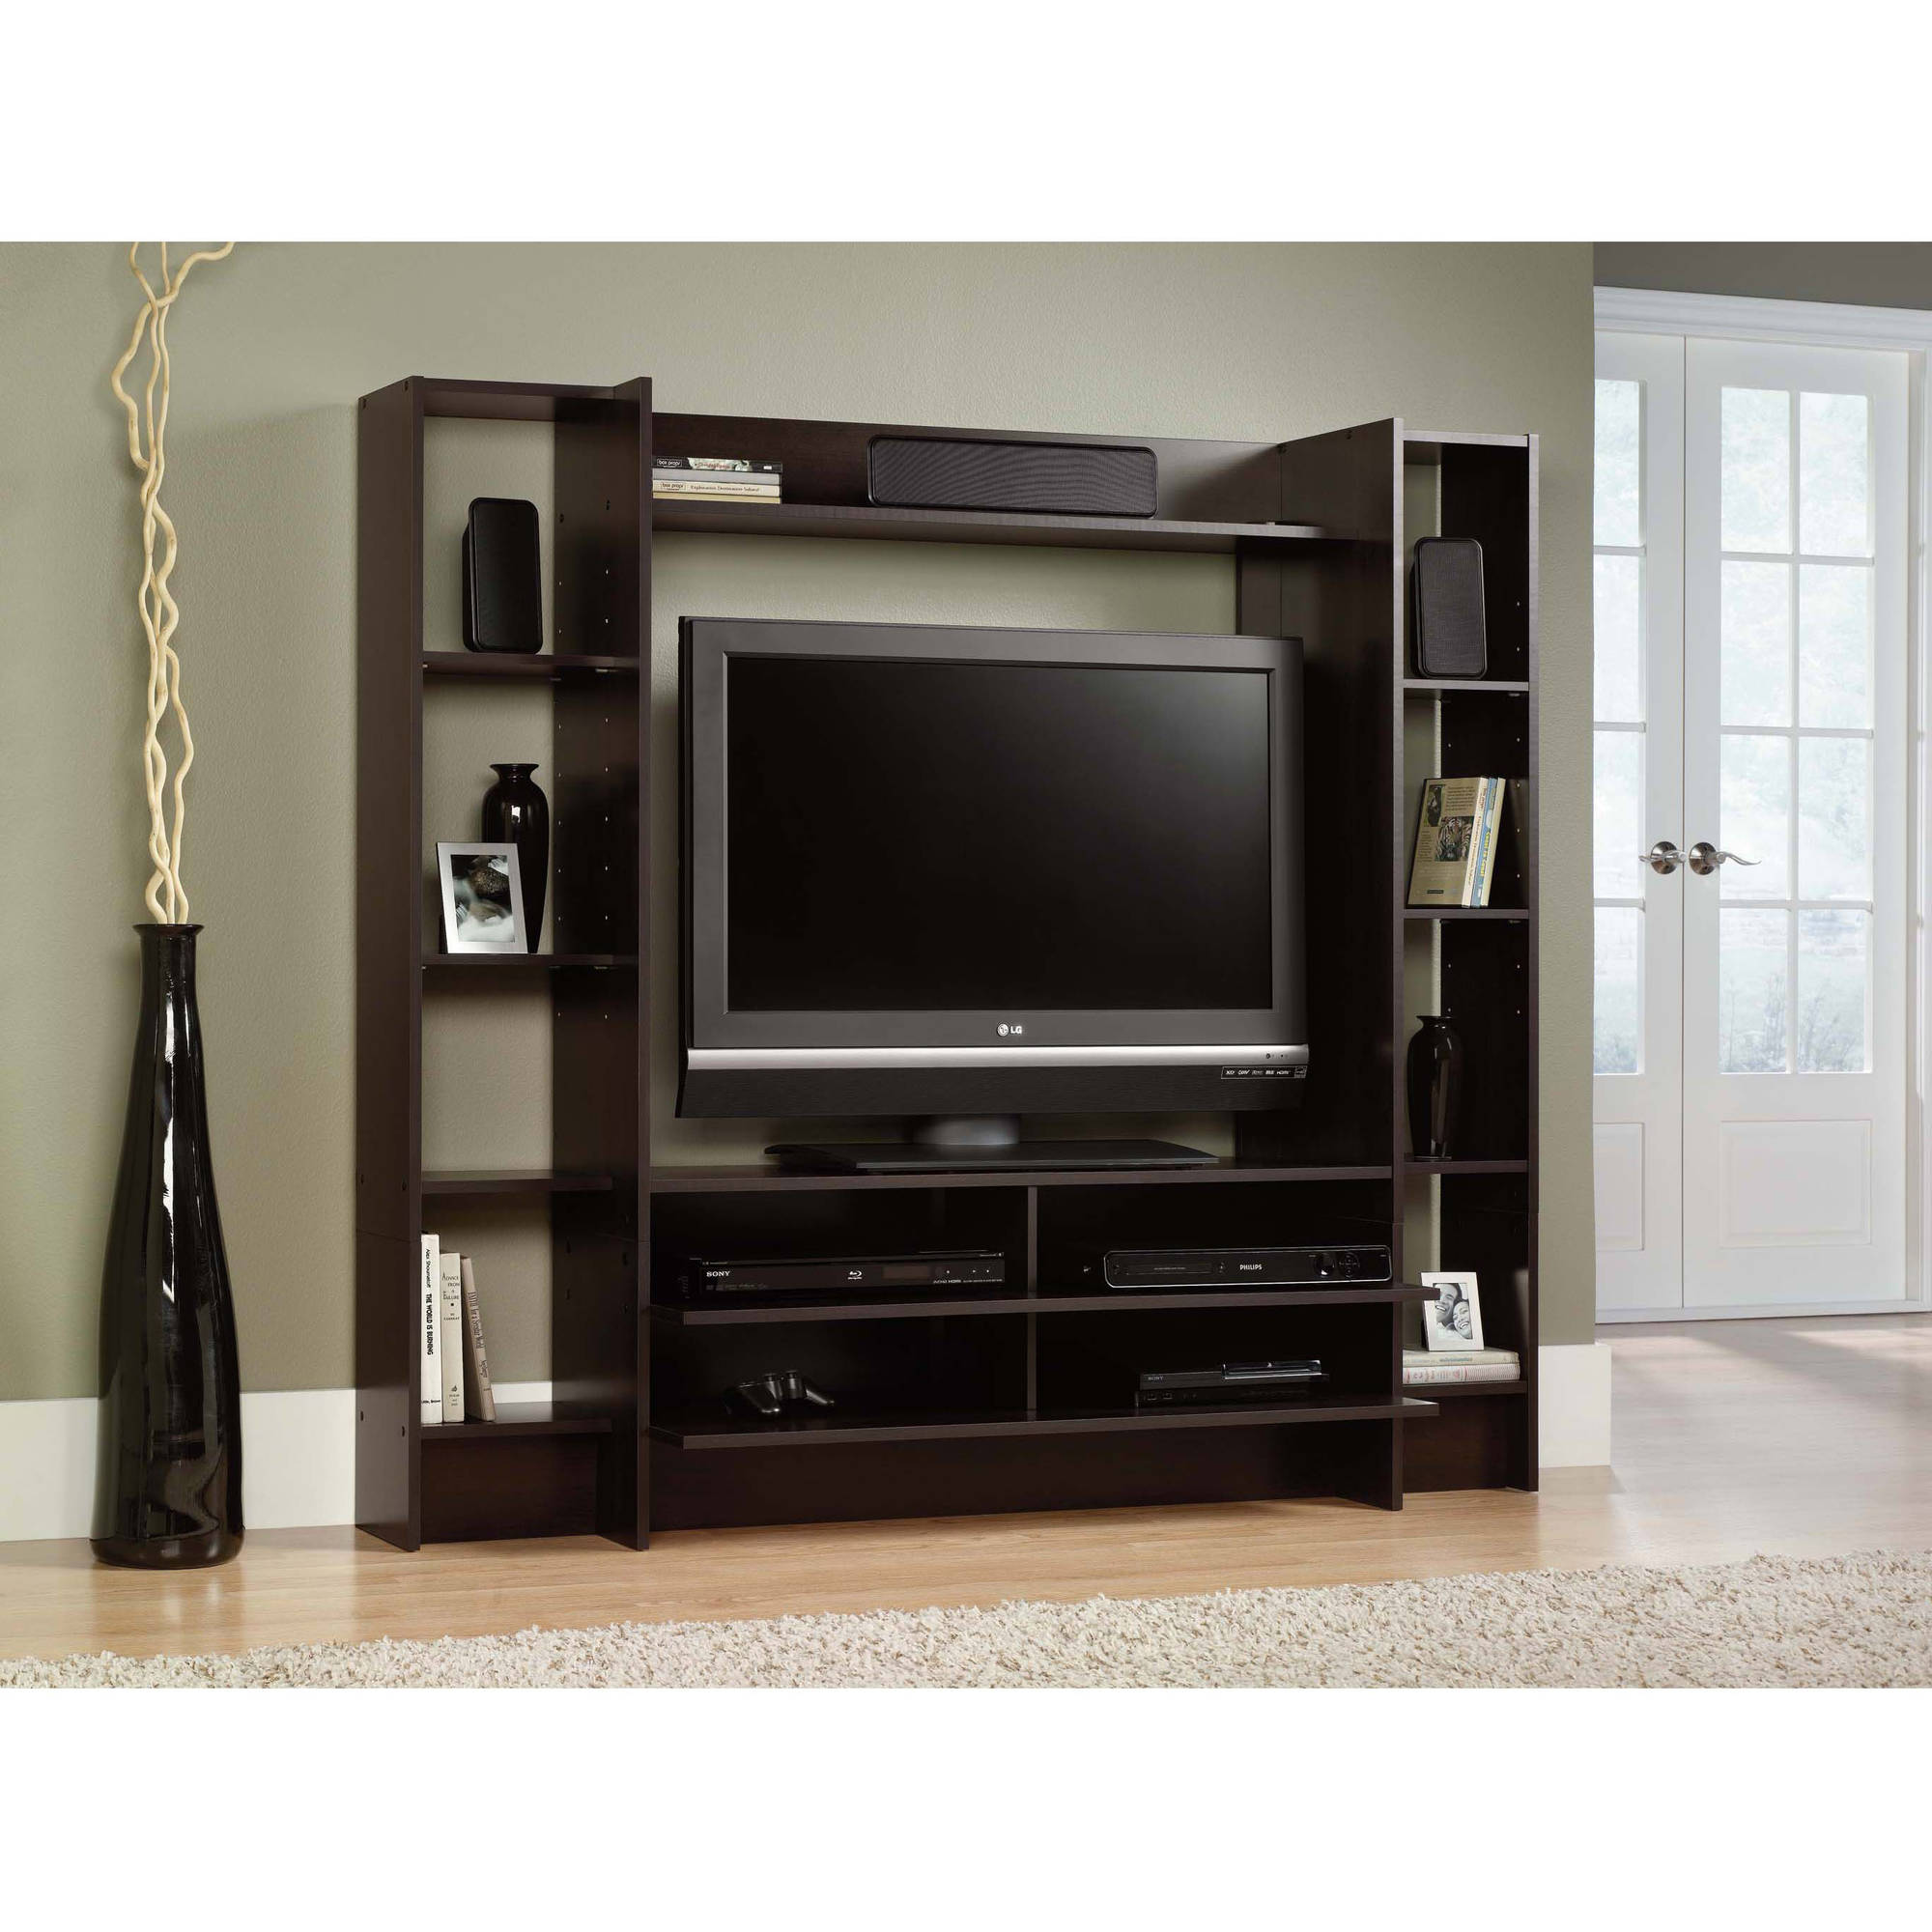 Sauder Beginnings Entertainment Wall System for TVs up to 42""